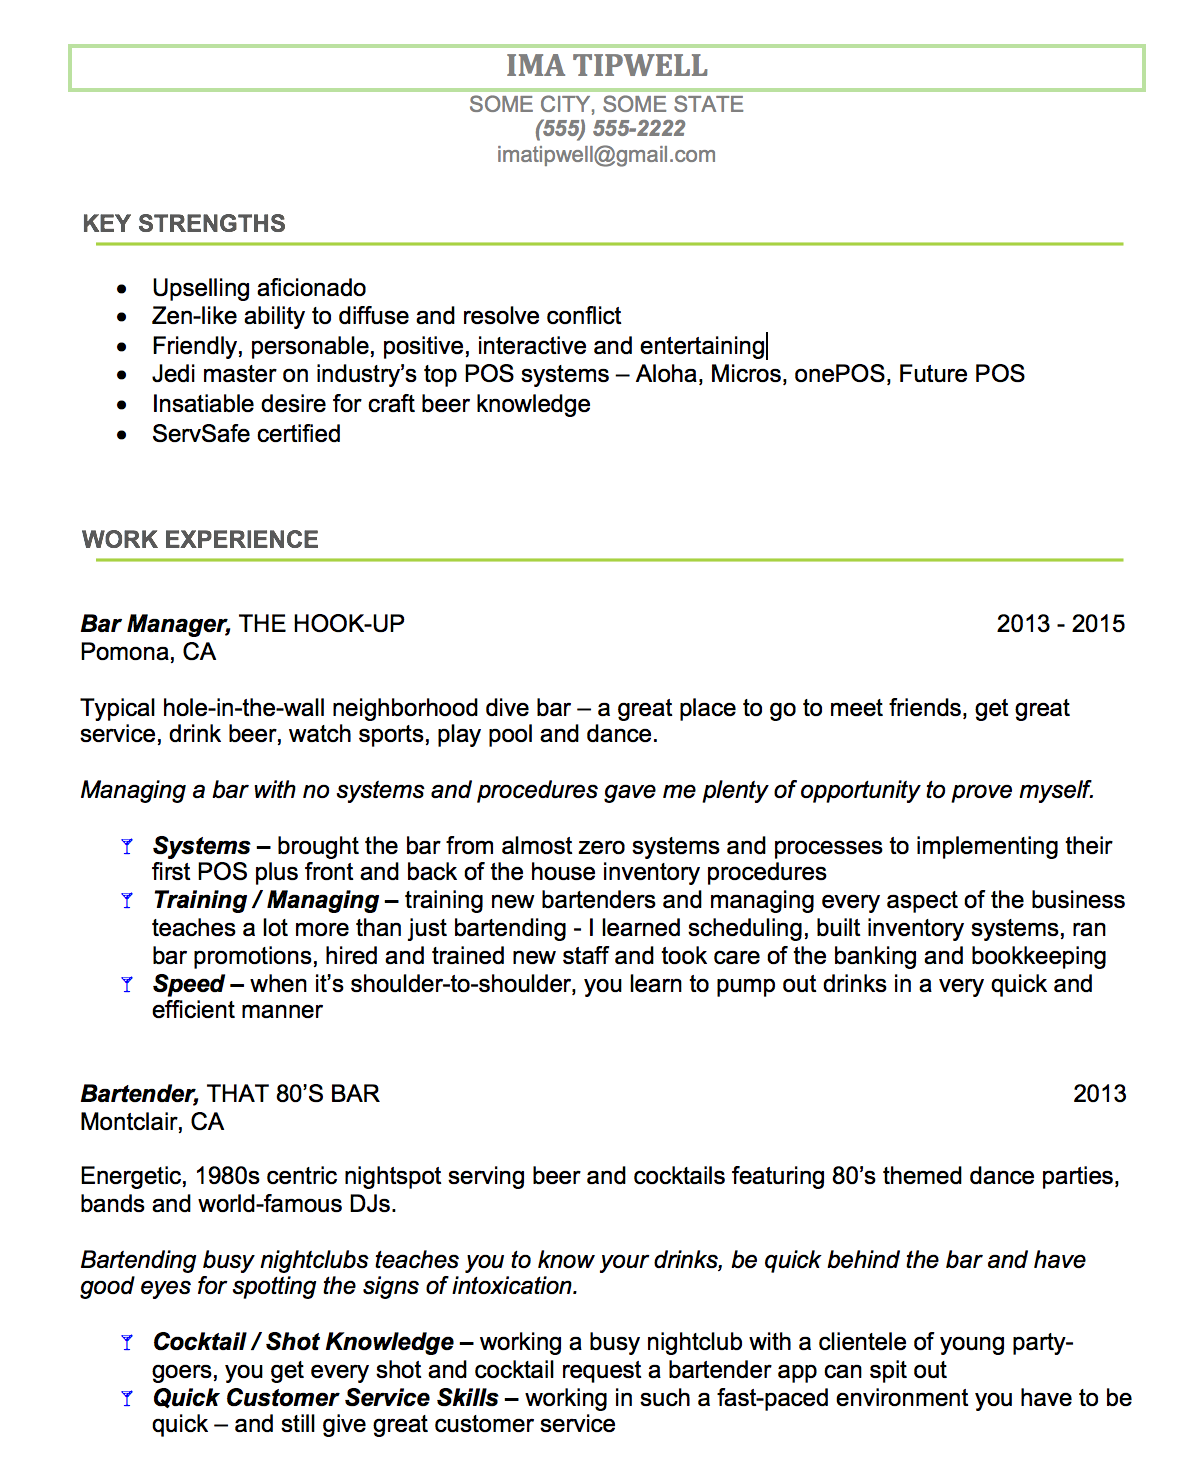 Good Bartending Resume Example #2 U2013 With Industry Experience  Bar Tender Resume